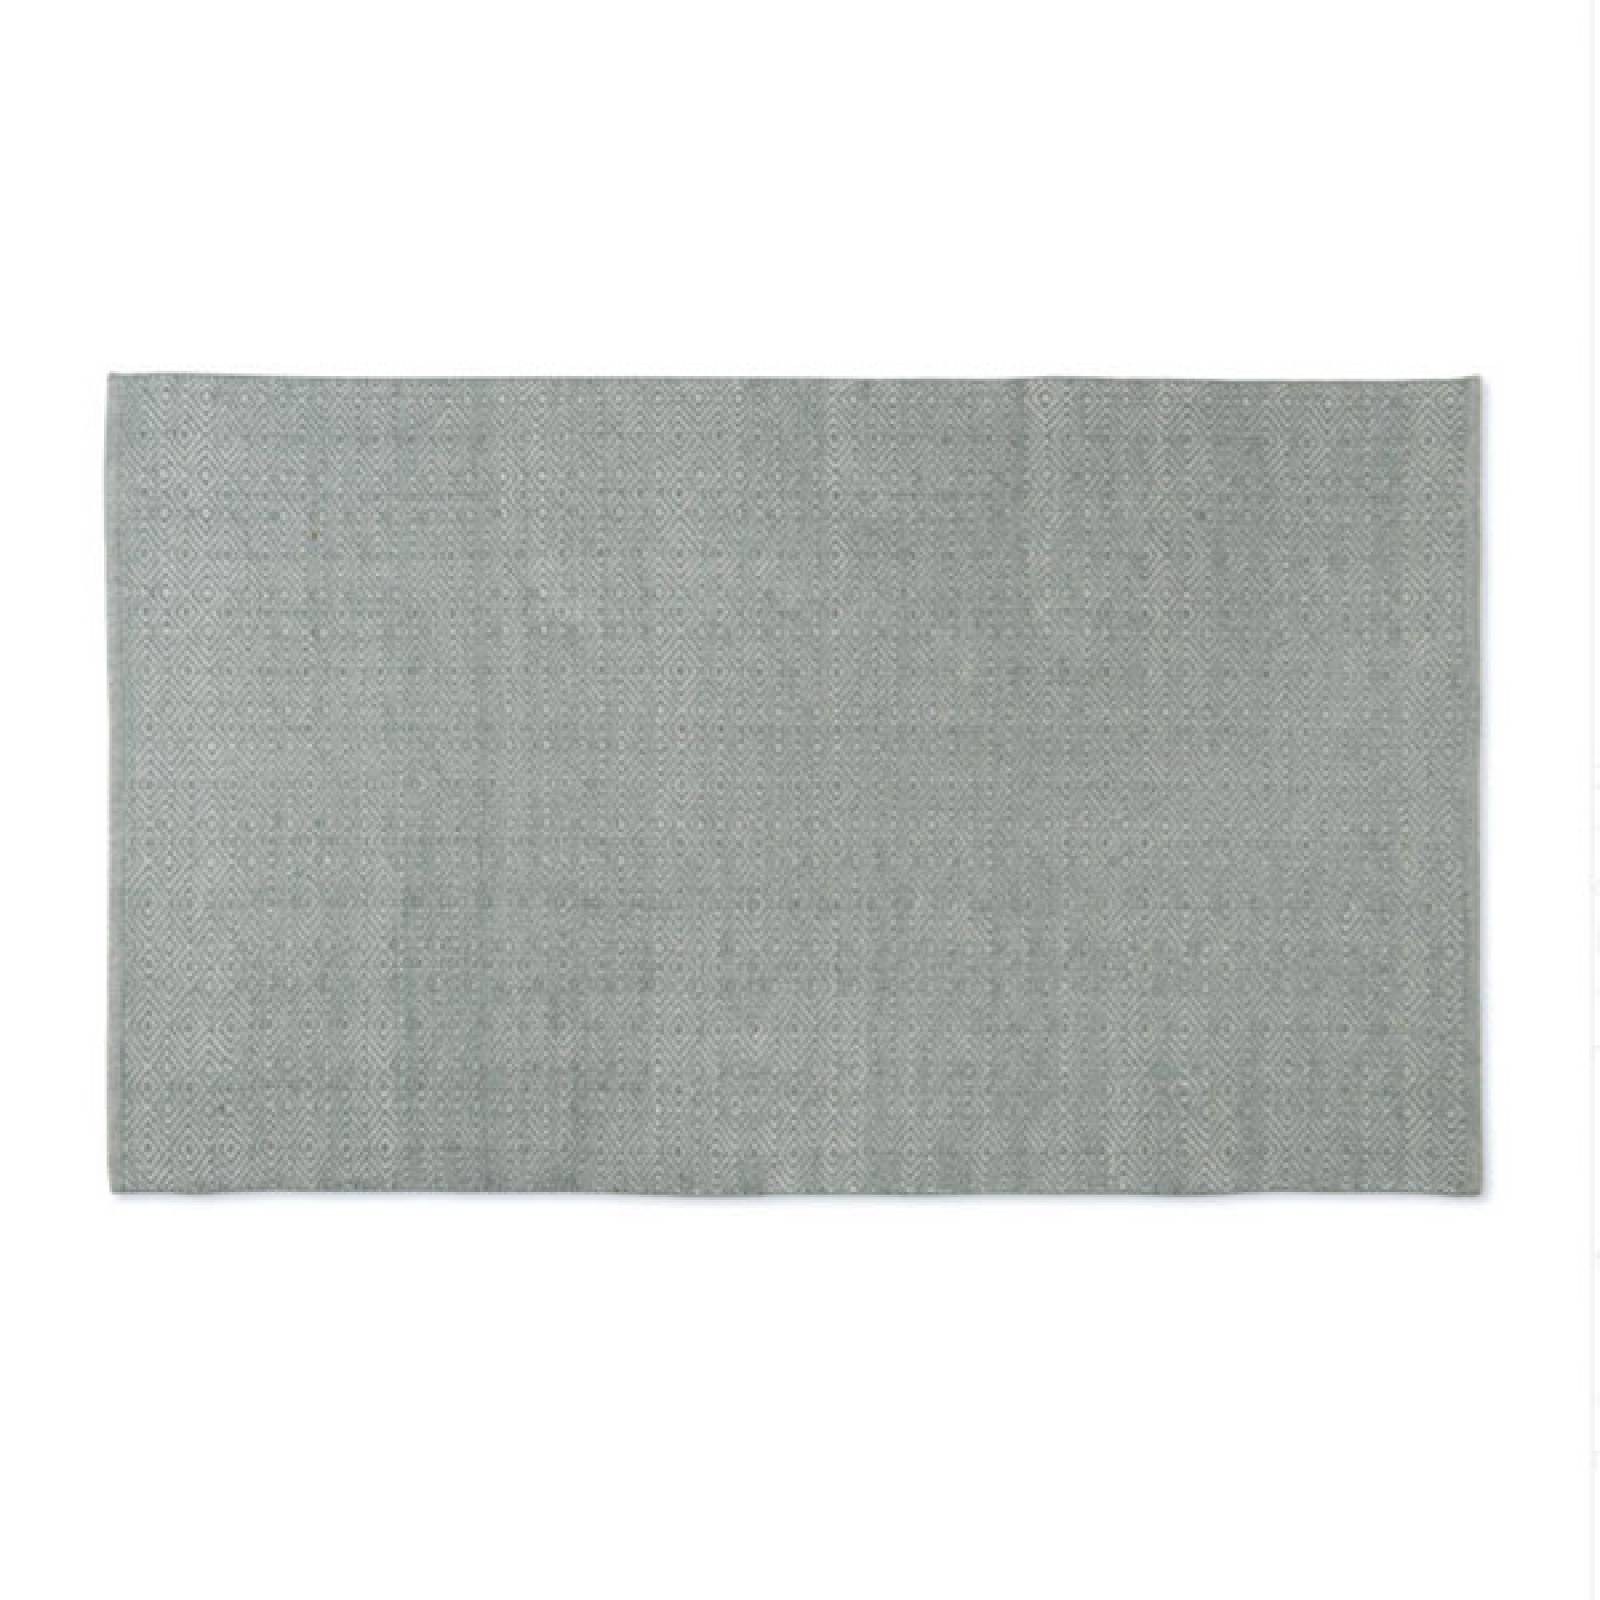 Diamond GREY 180 x 120cm Recycled Bottle Rug thumbnails